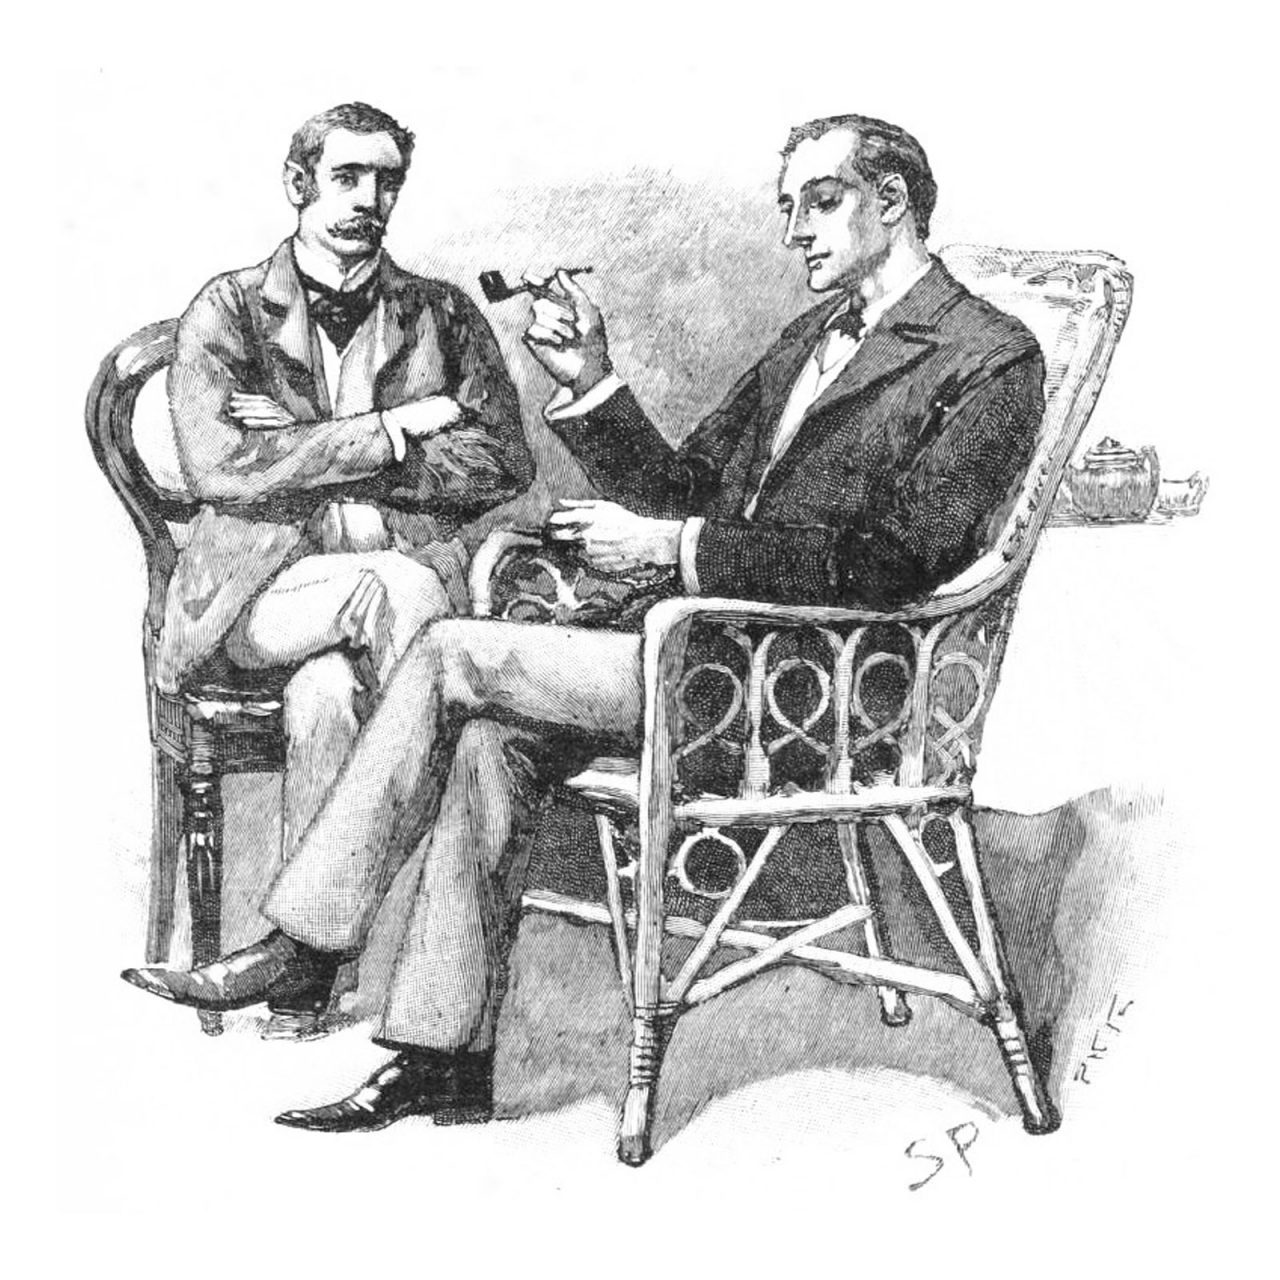 A Reader's Guide to Sir Arthur Conan Doyle & 'The Hound of the Baskervilles'